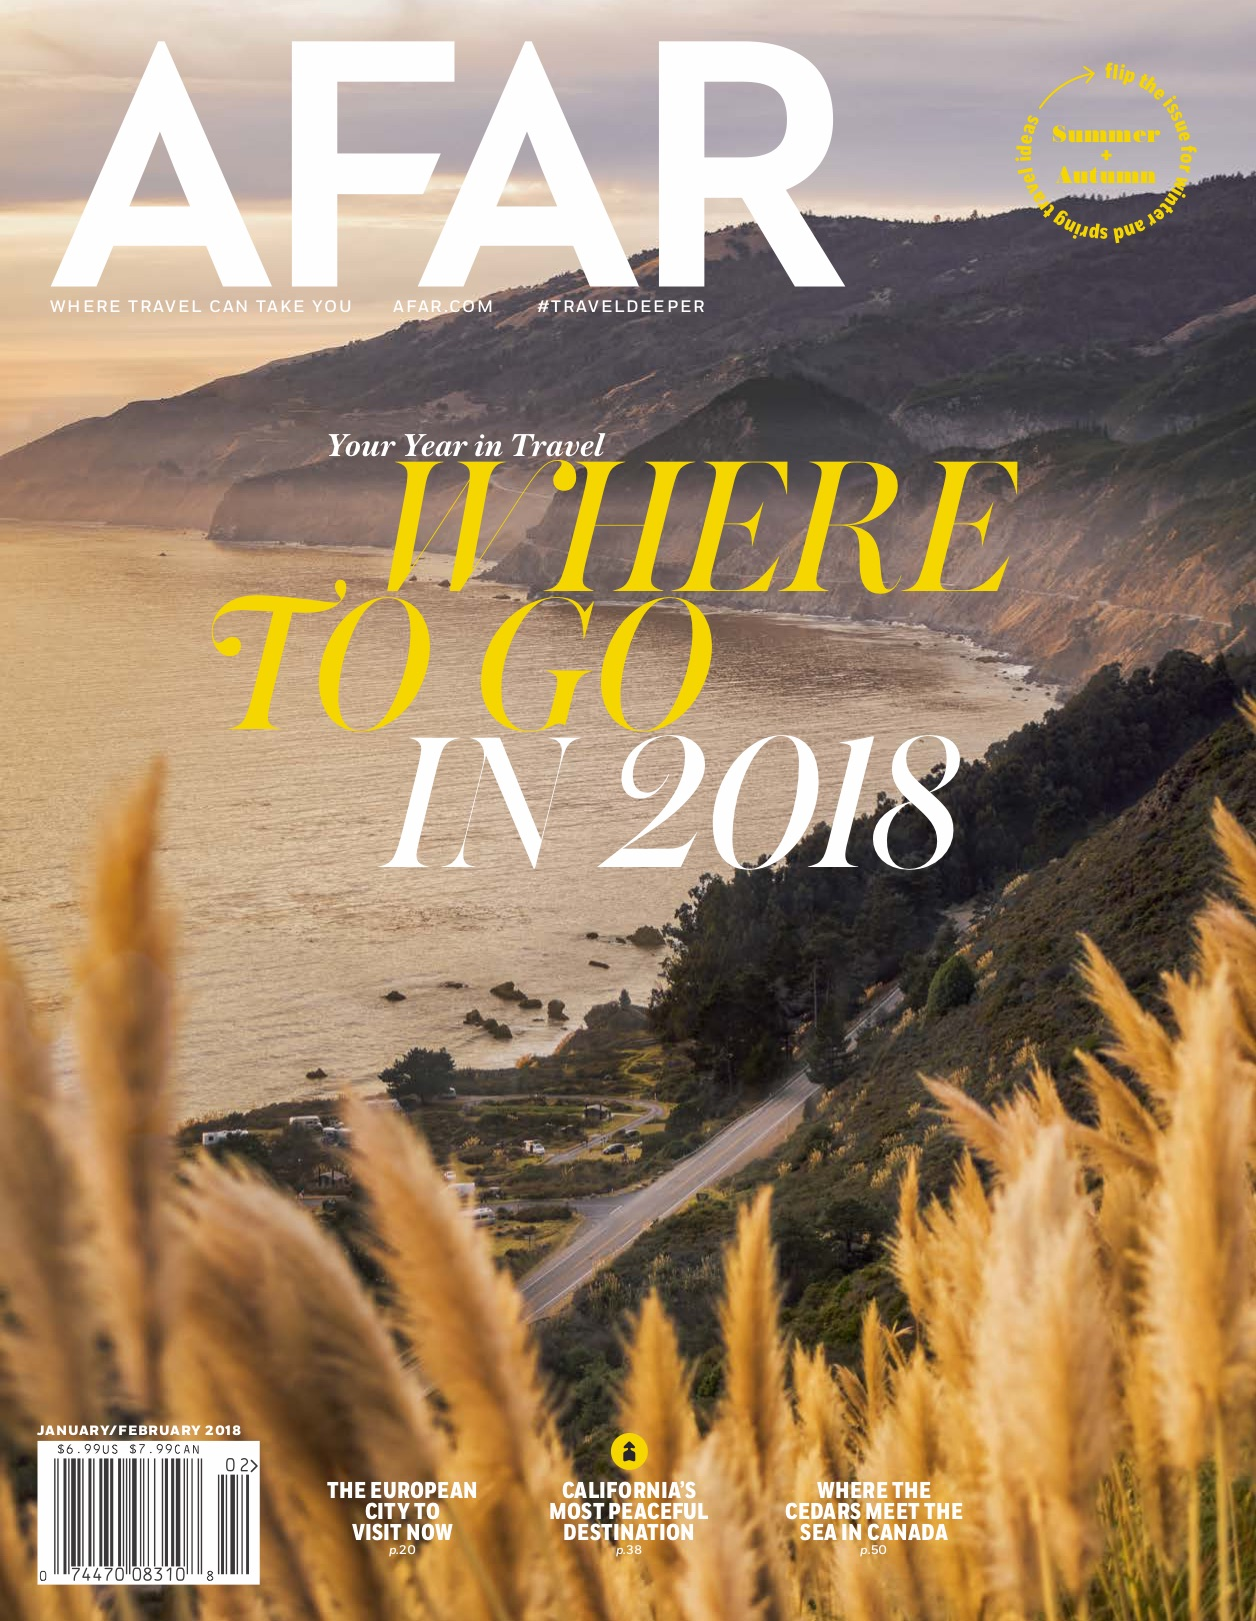 AFAR_JanFeb2018cover_SummerAutumn.jpg